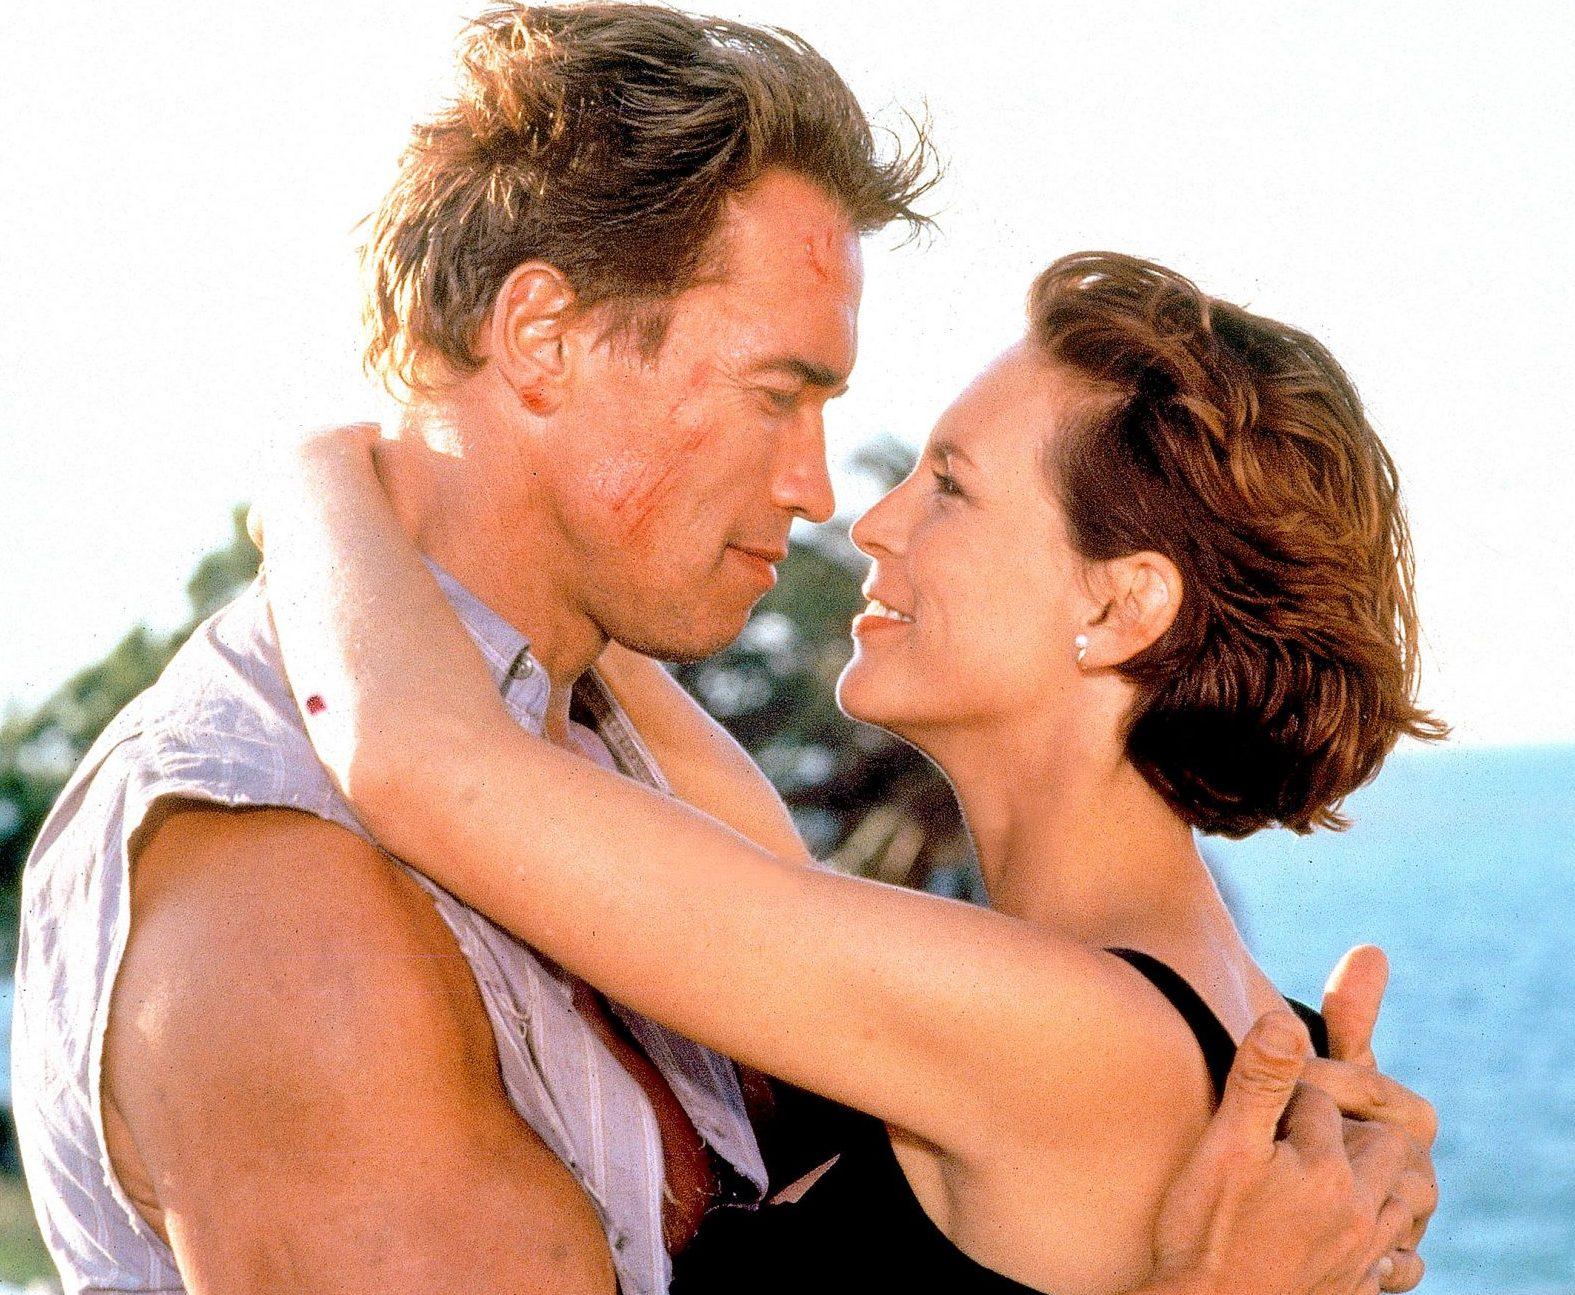 000263577 2000 e1615547997648 20 Things You Never Knew About True Lies